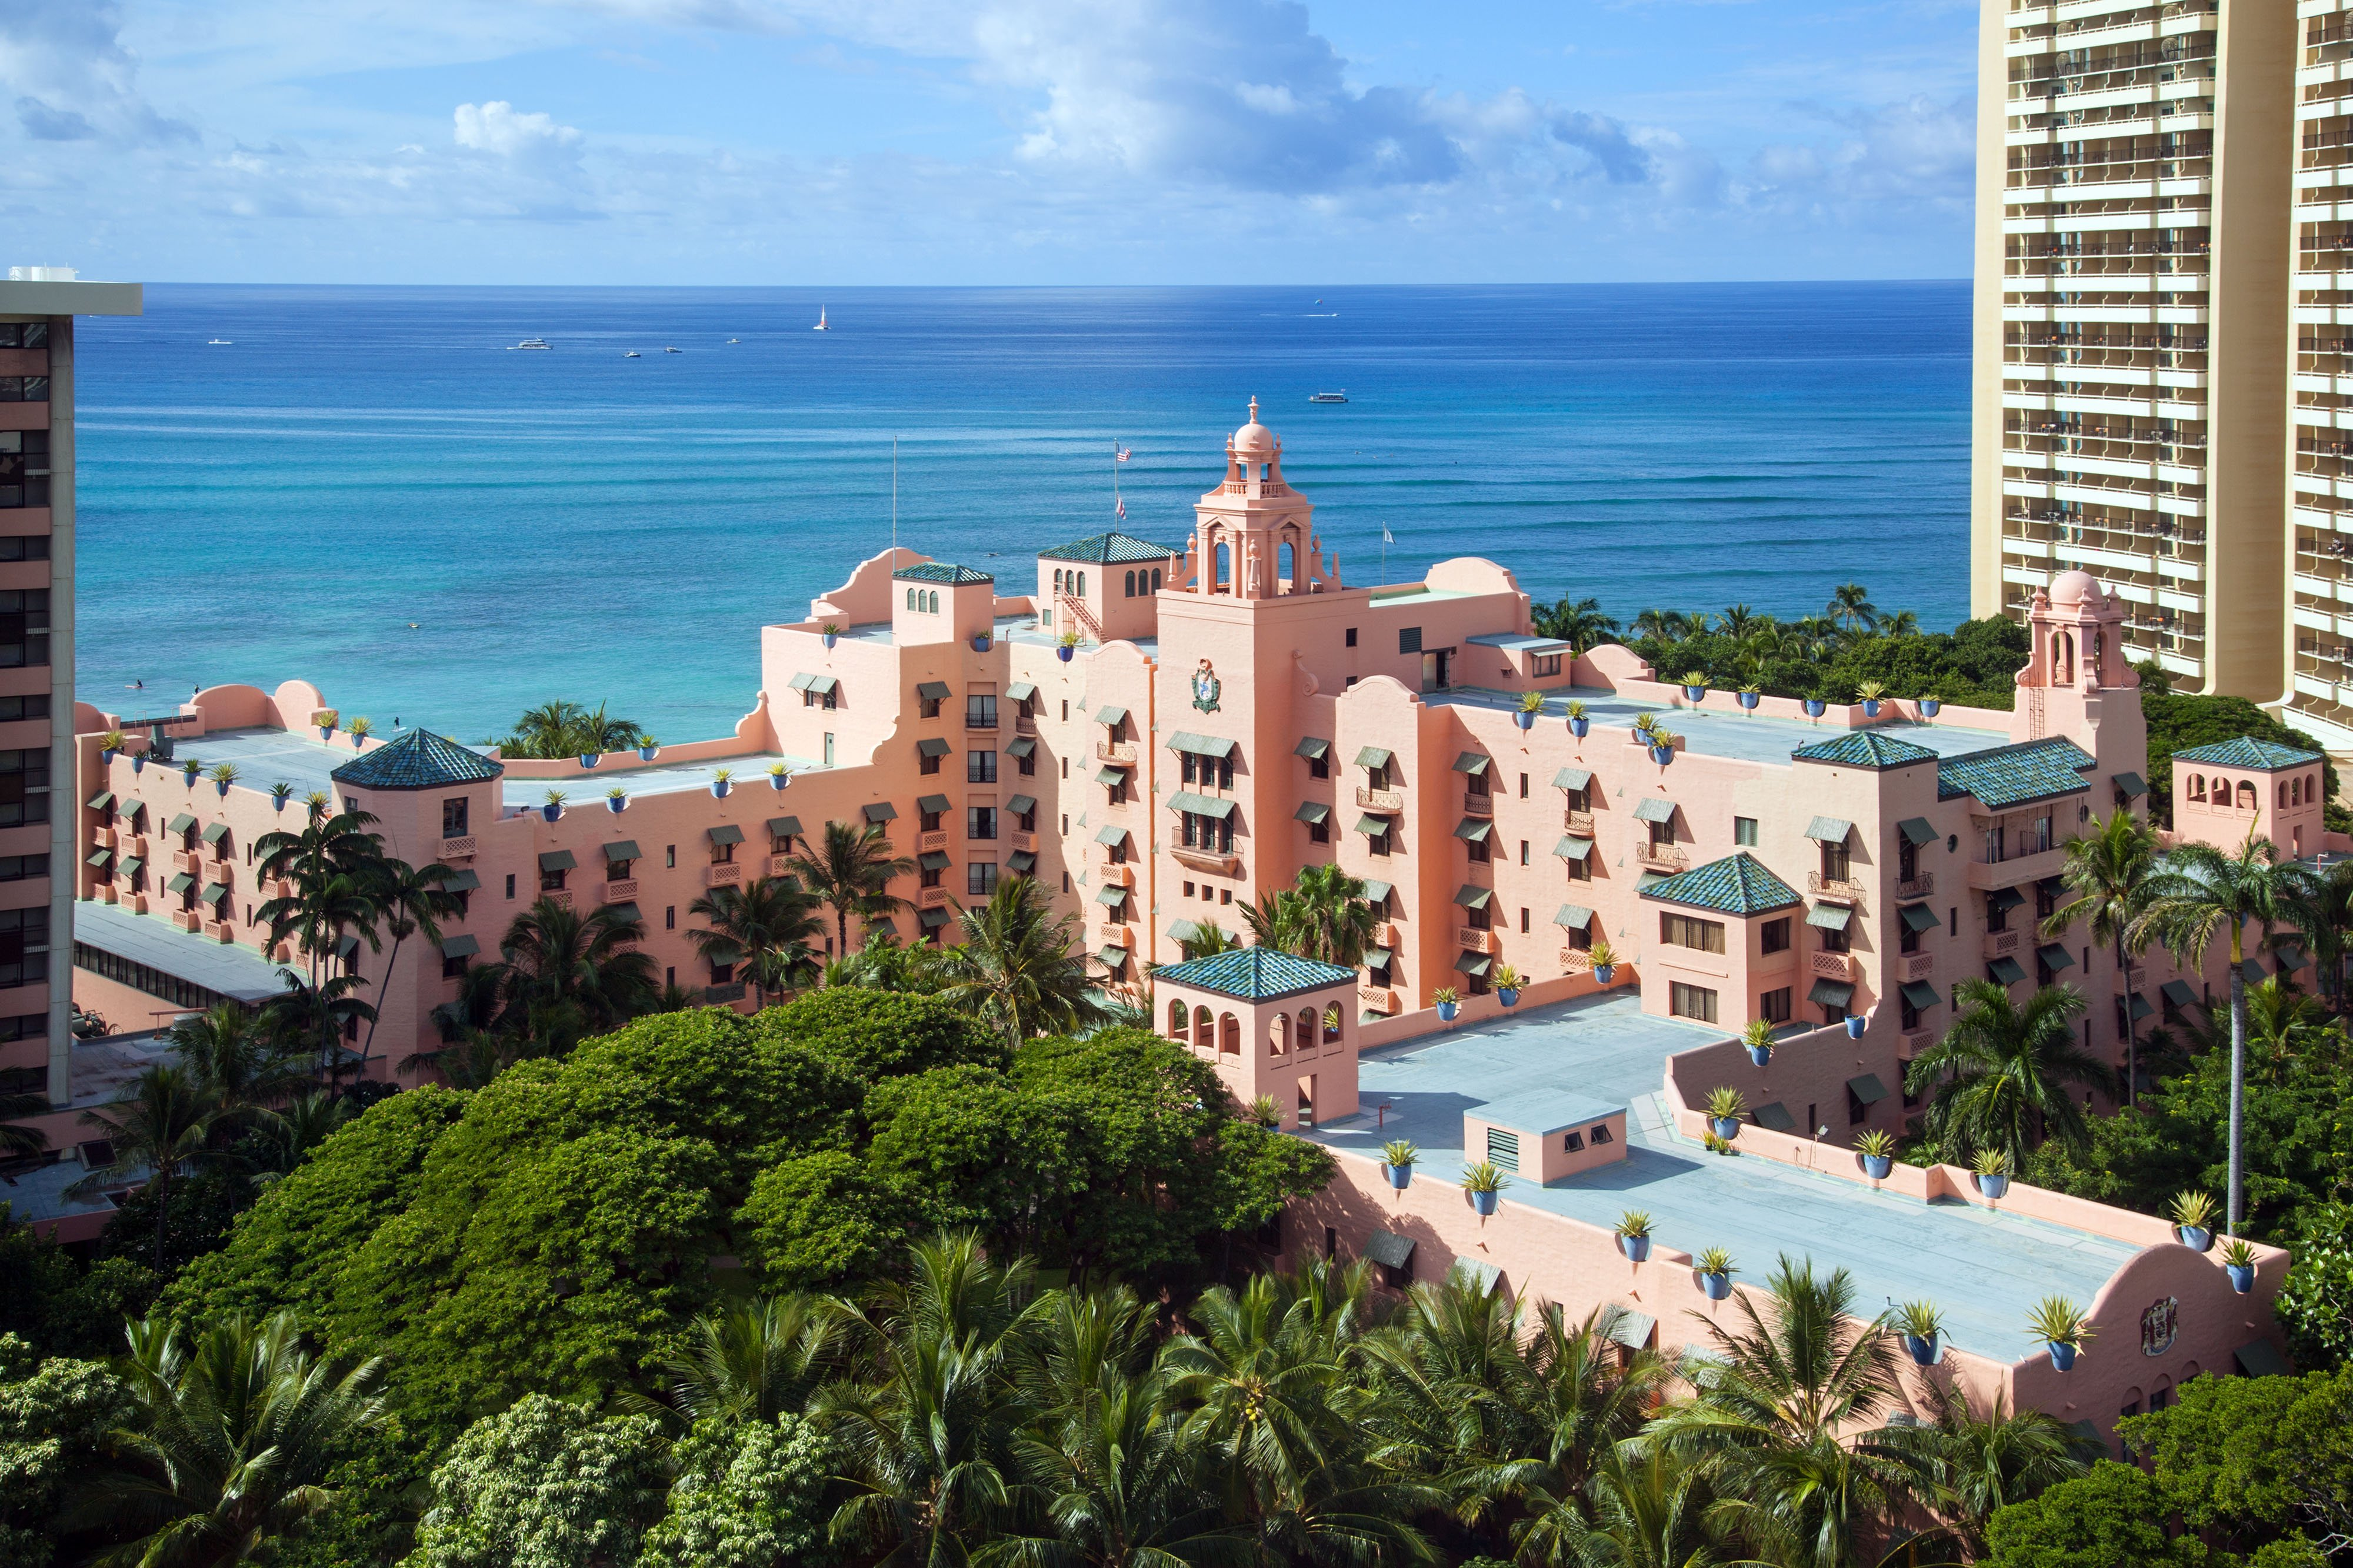 The Royal Hawaiian A Luxury Collection Deluxe Honolulu Hi Hotels Gds Reservation Codes Travel Weekly